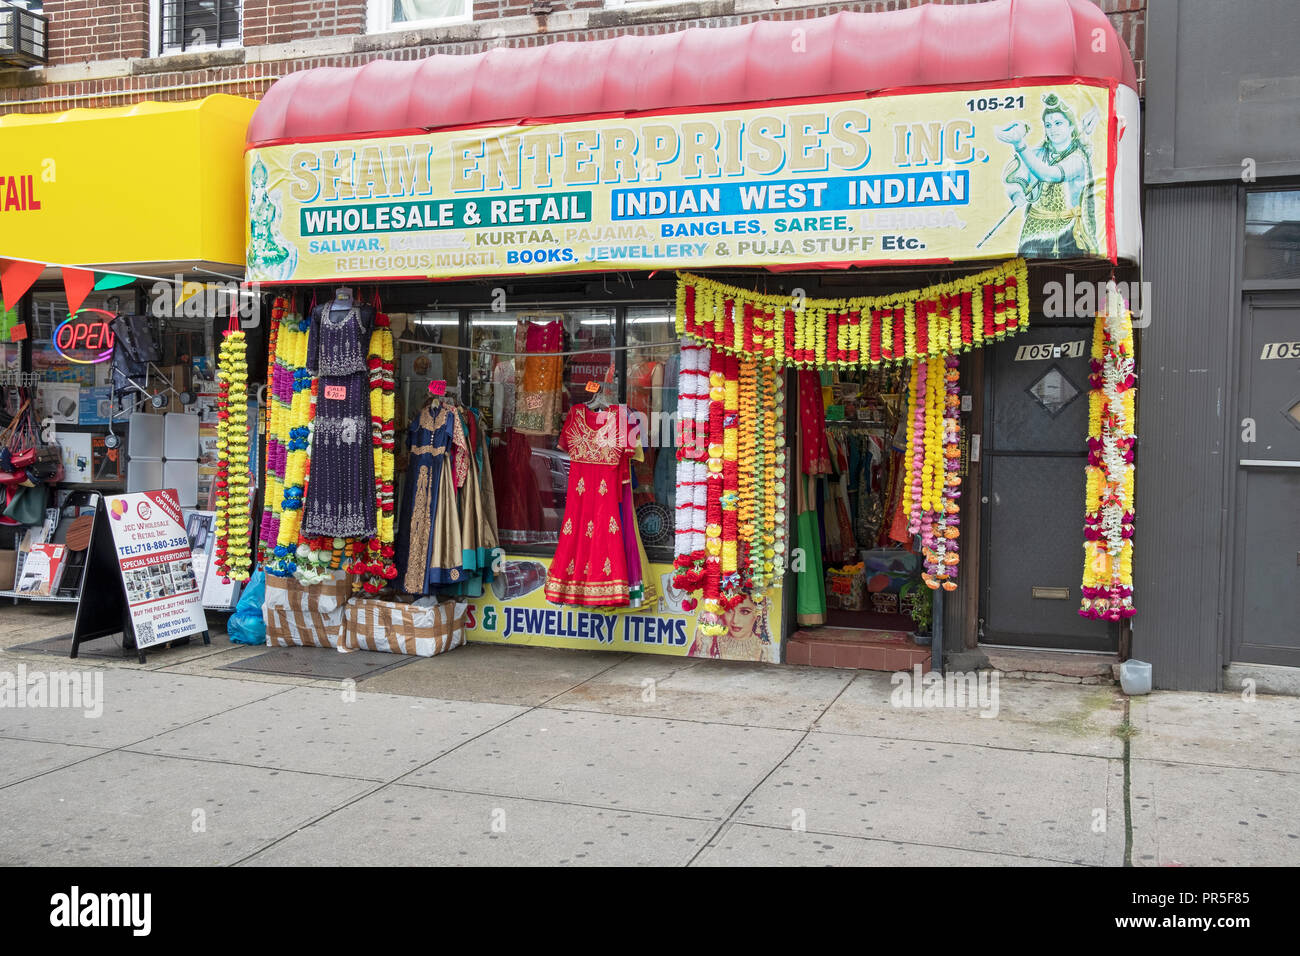 The exterior of SHAM ENTERPRISES INC., a store that sells Indian fashions  on Liberty Ave. in South Richmond Hill, Queens, New York City. - Stock Image